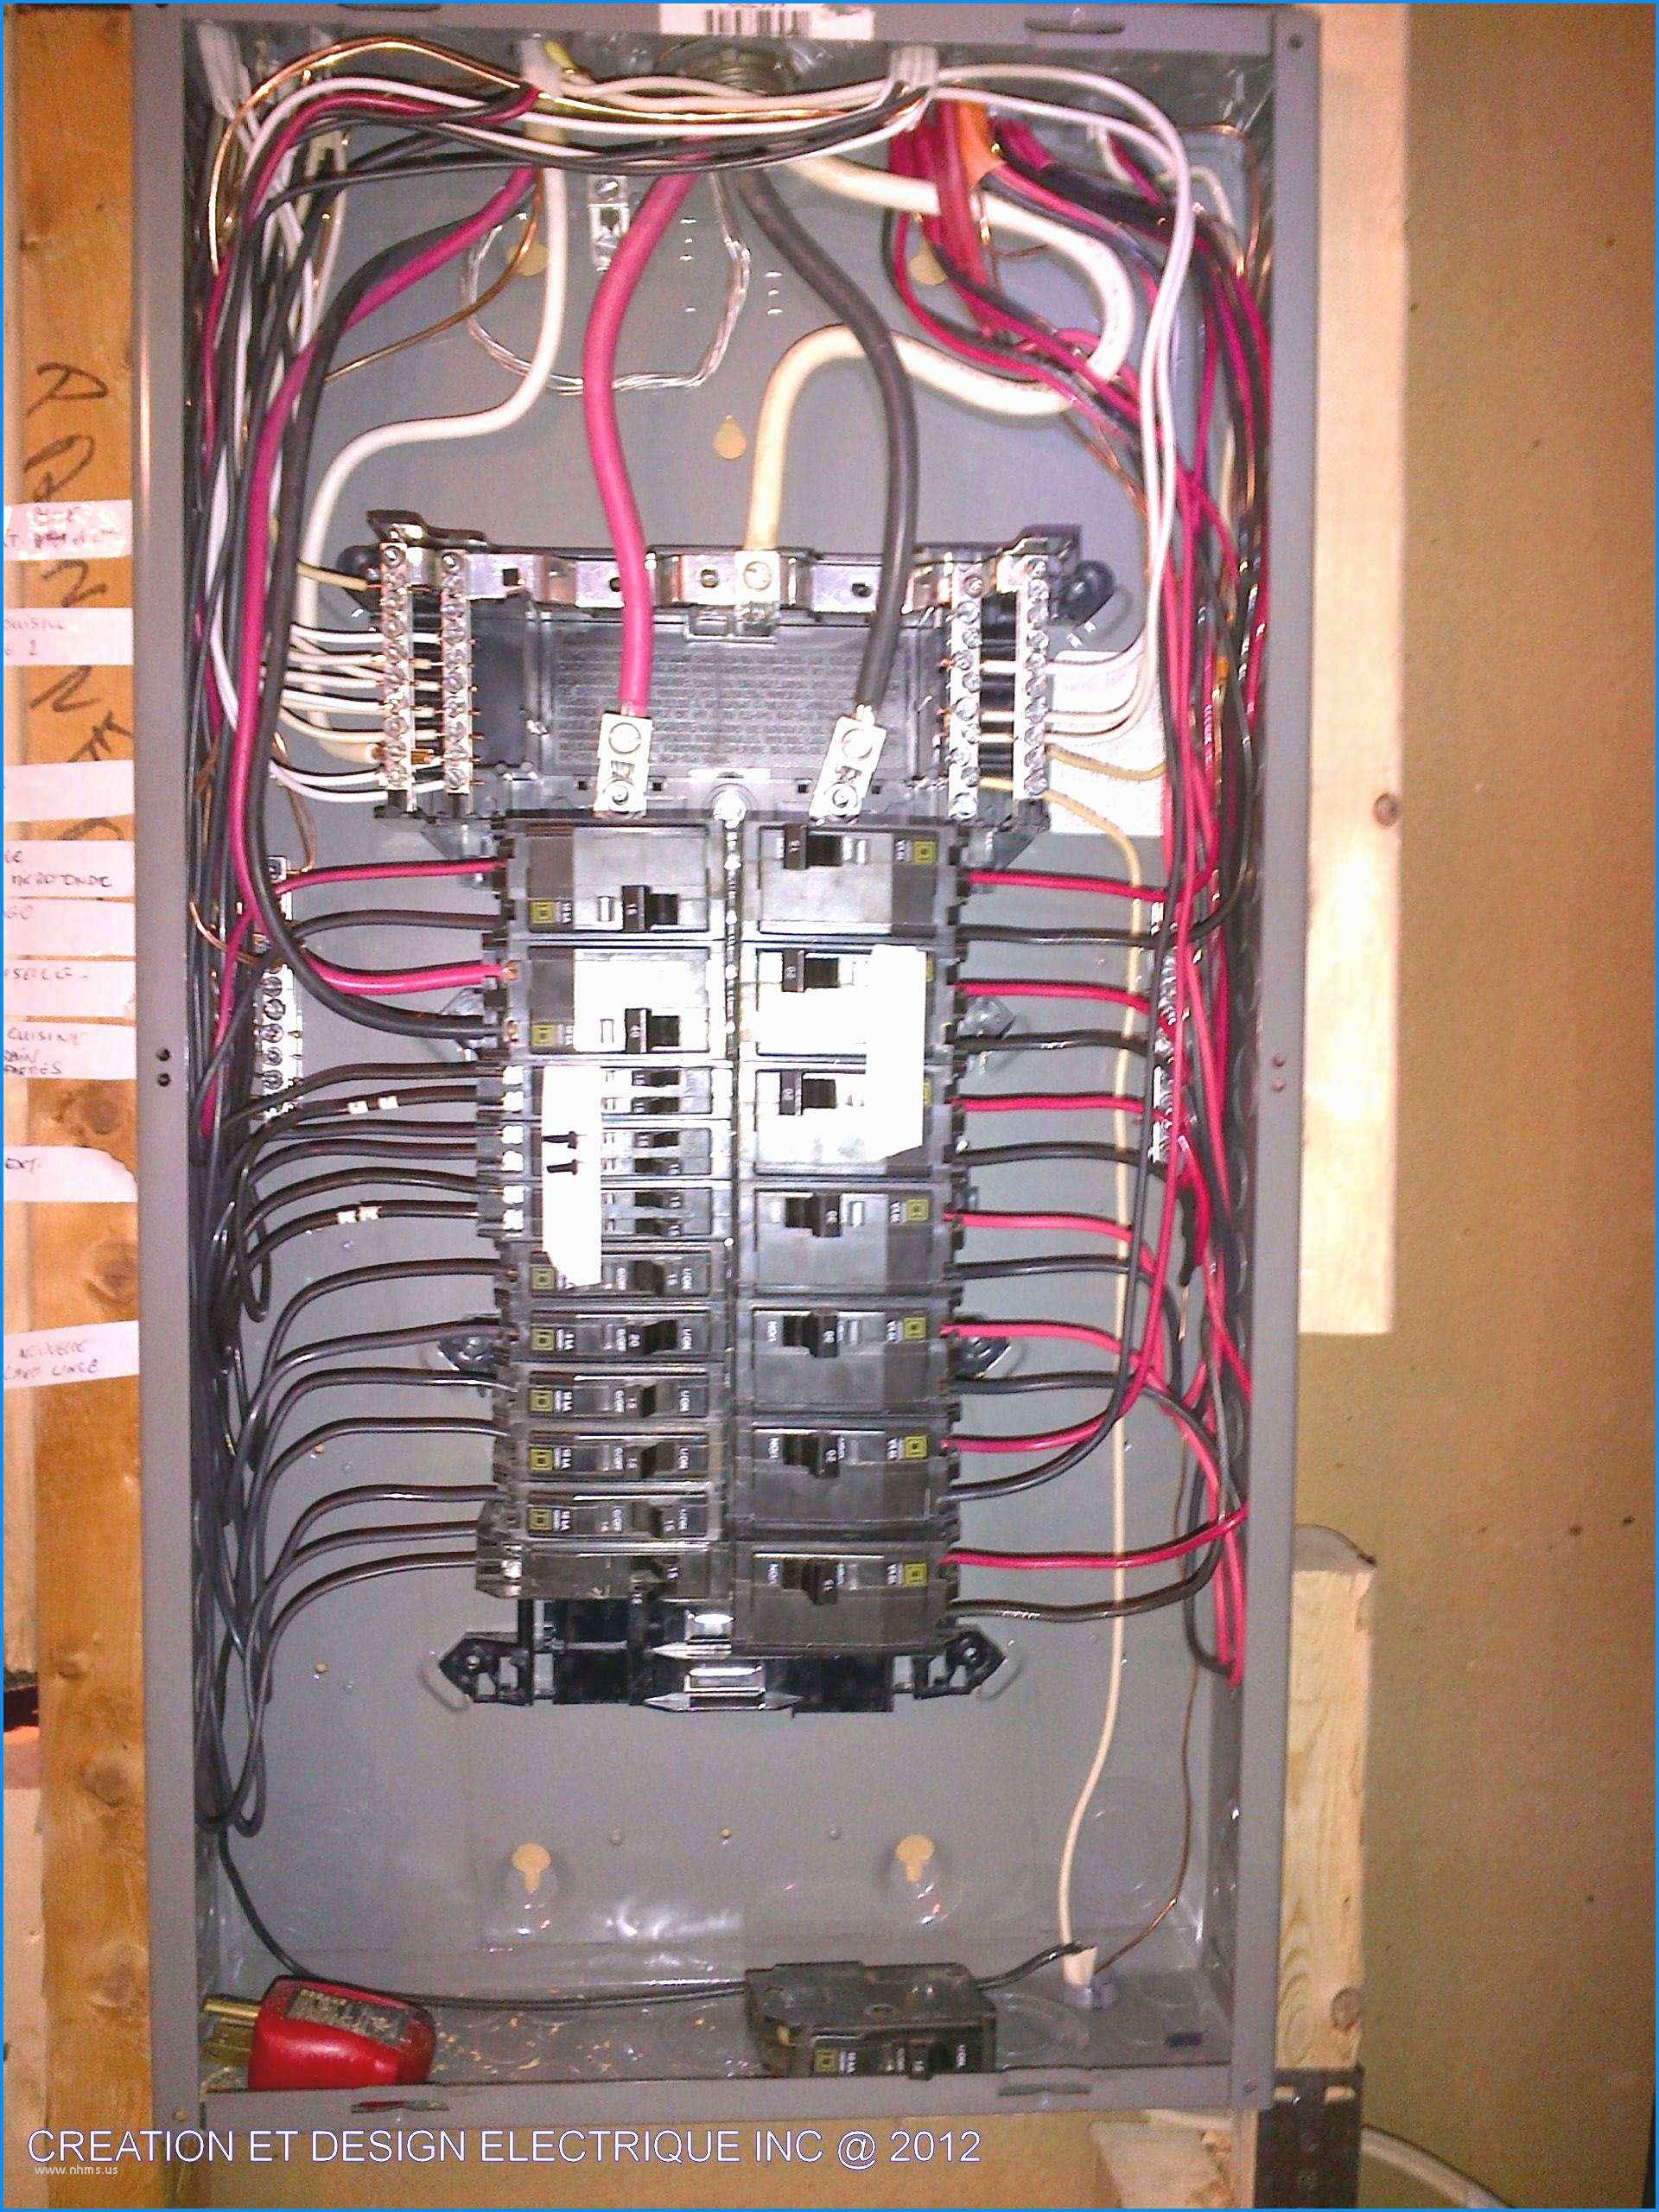 100 Amp Homeline Load Center Wiring Diagram | Wiring Diagram - Homeline Load Center Wiring Diagram